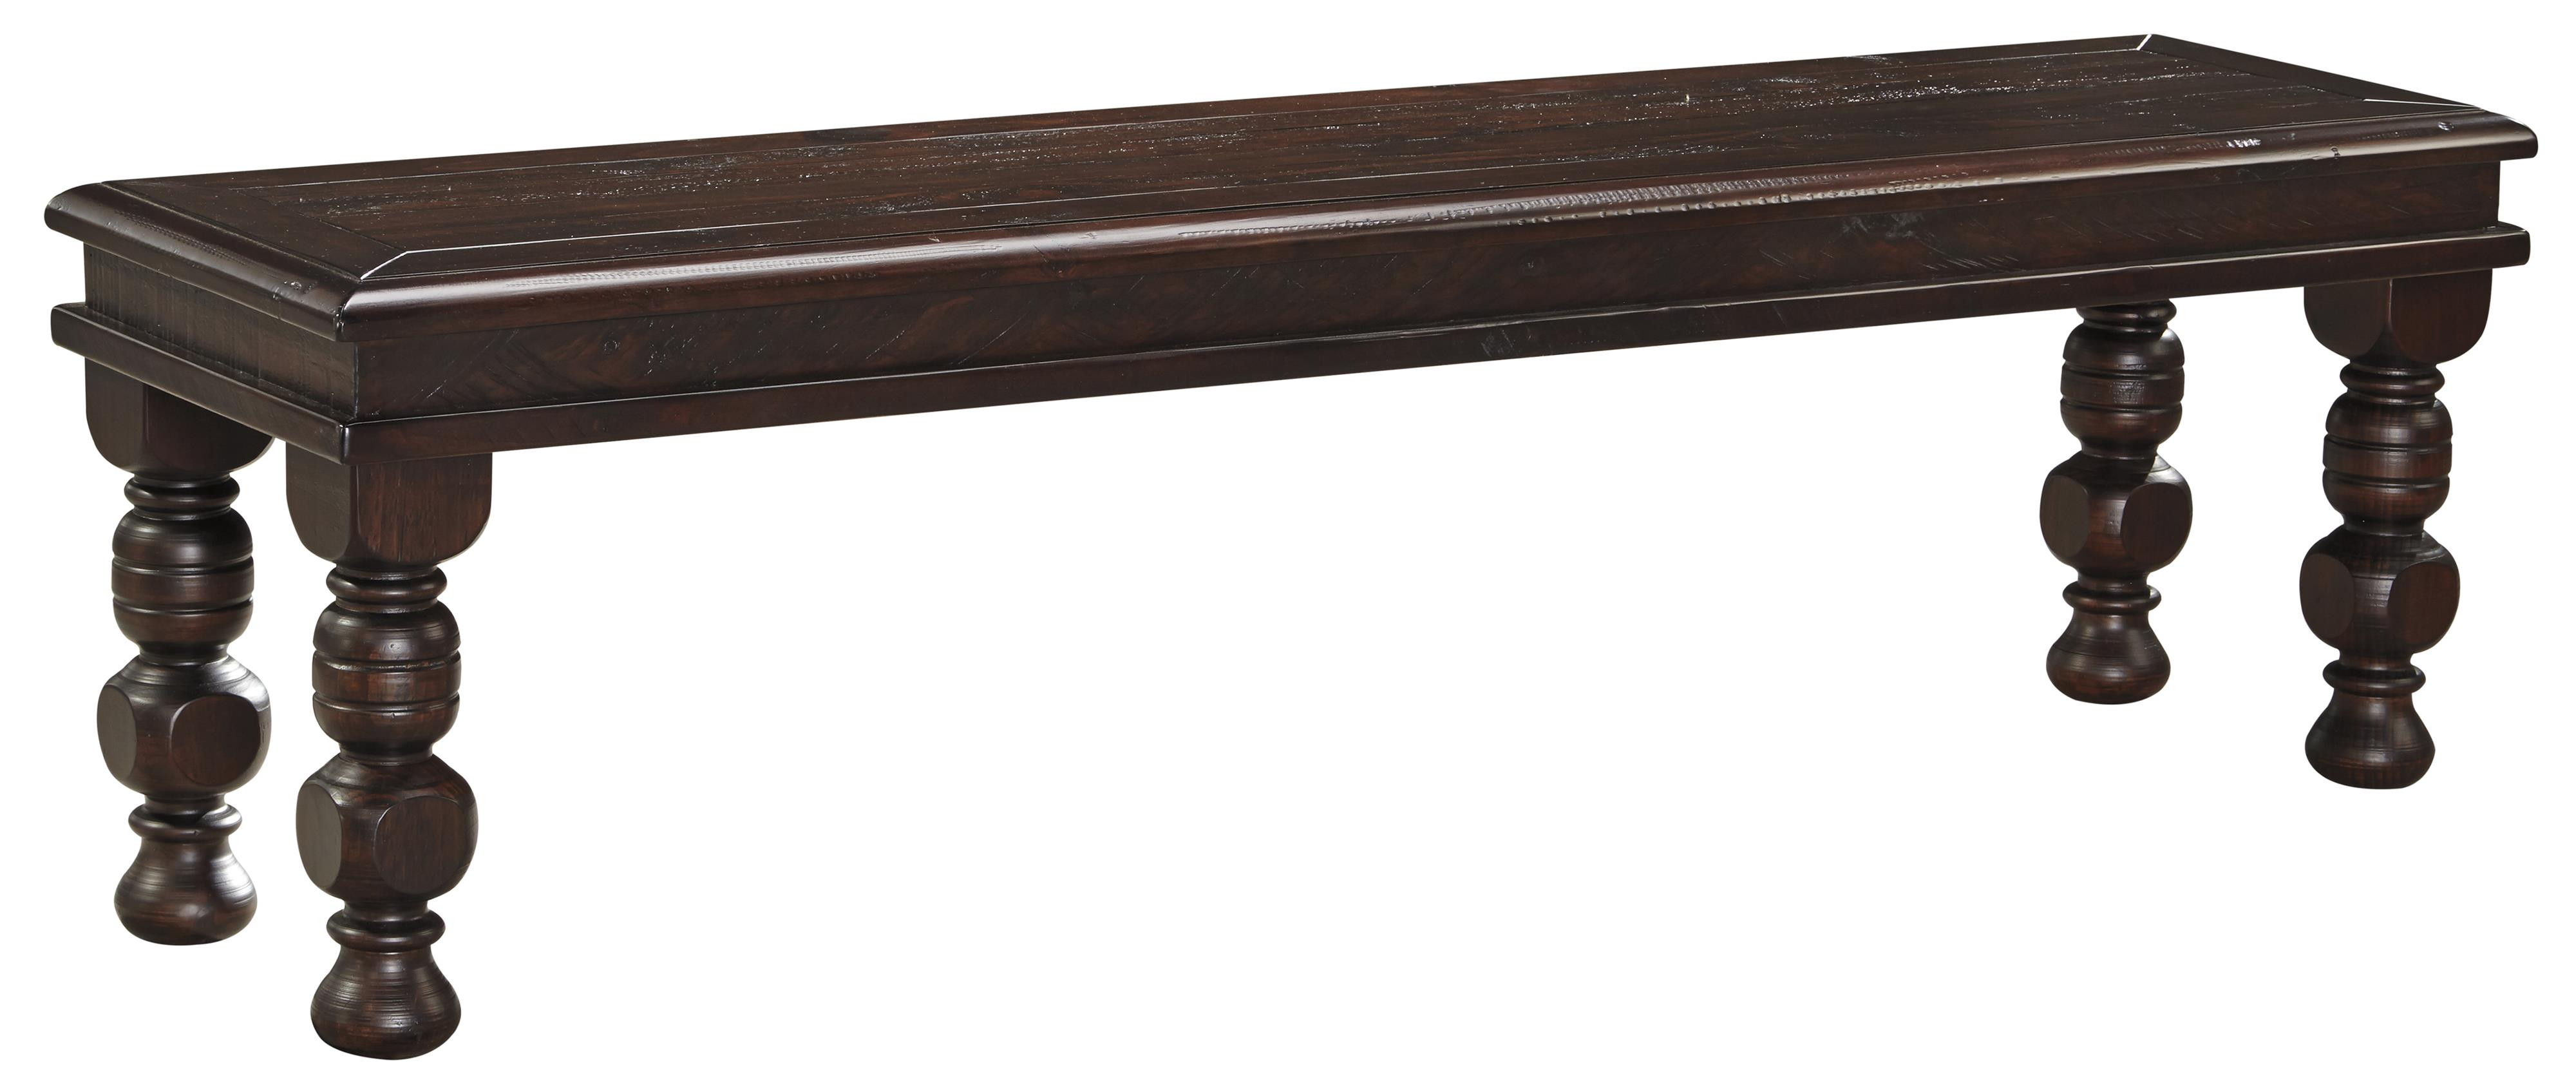 Signature Design by Ashley Gerlane Large Dining Room Bench - Item Number: D657-00